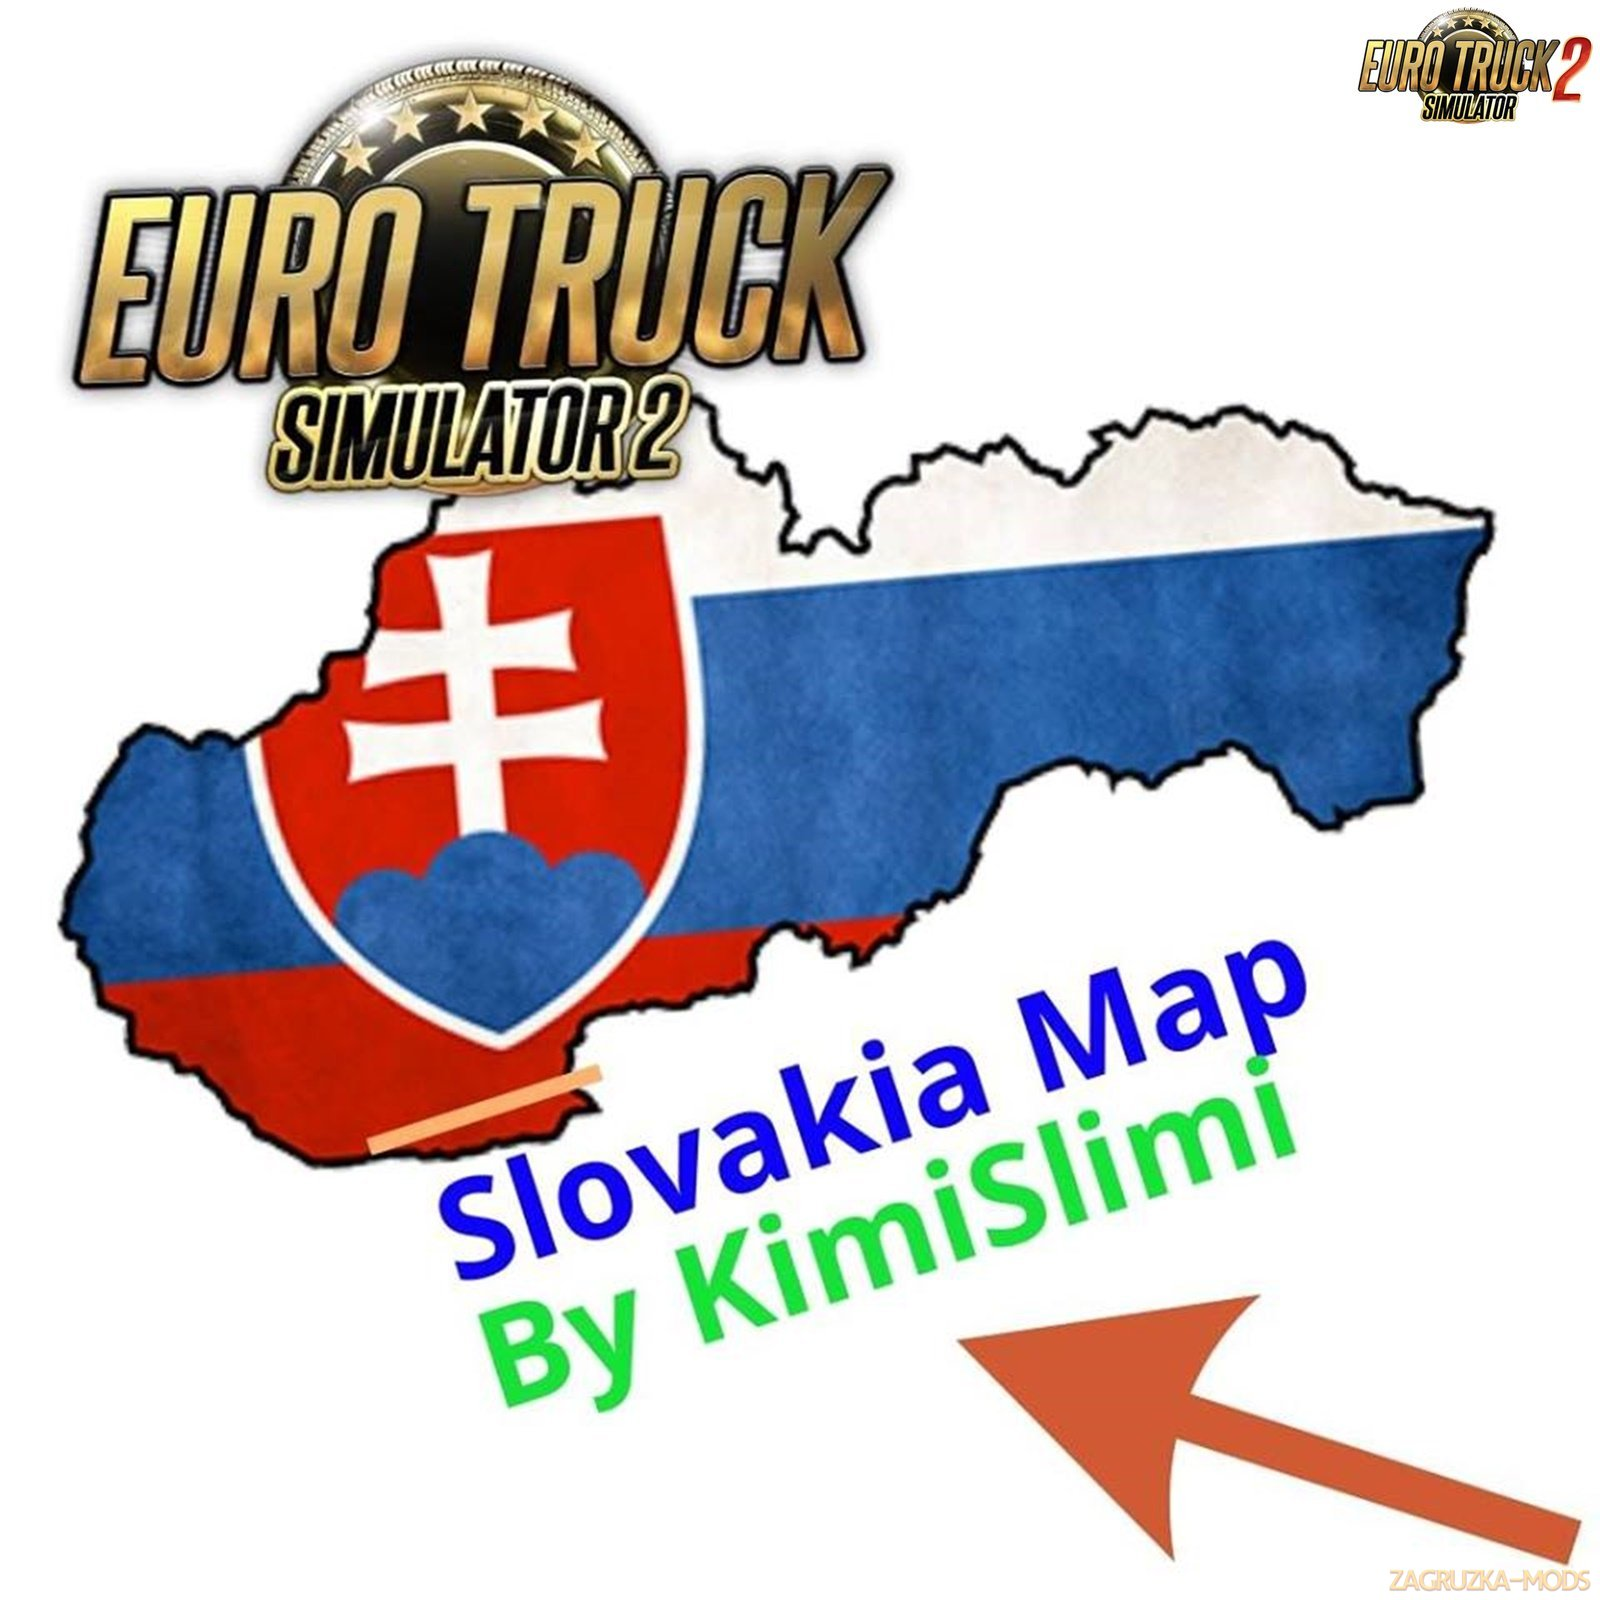 New Slovakia Map v16-Demo by KimiSlimi (1.34.x)